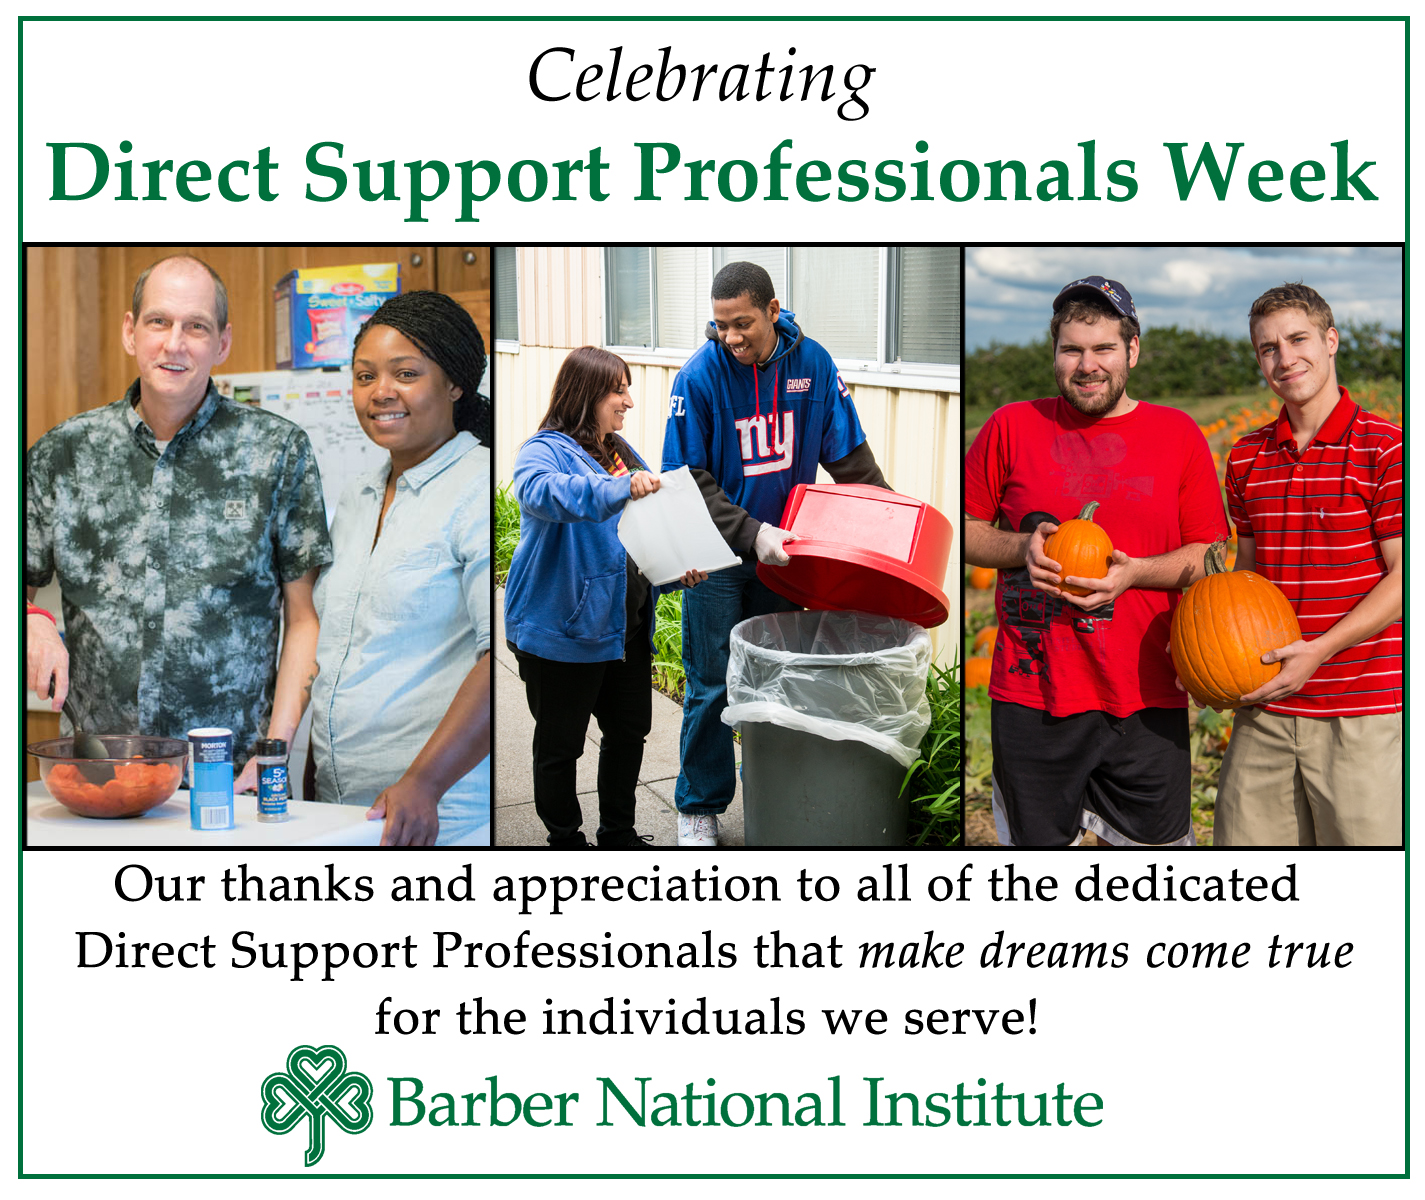 Barber Institute Erie : Direct Support Professional Week - Barber National Institute